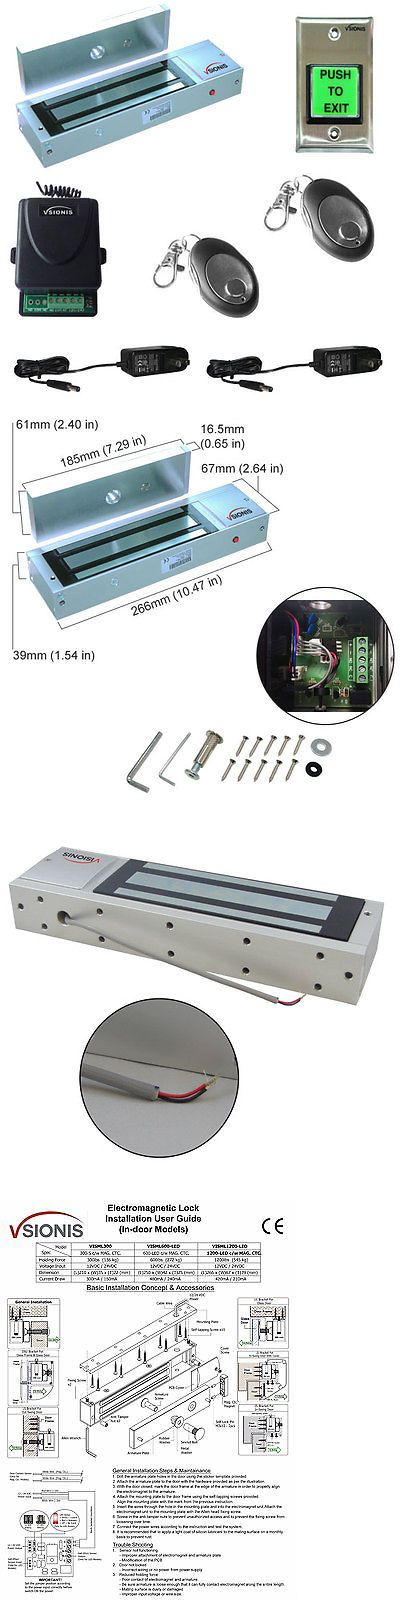 Intercoms and Access Controls: Maglock 1200Lbs Vsionis Access Control Kit With Wireless Receiver And Remote BUY IT NOW ONLY: $175.95